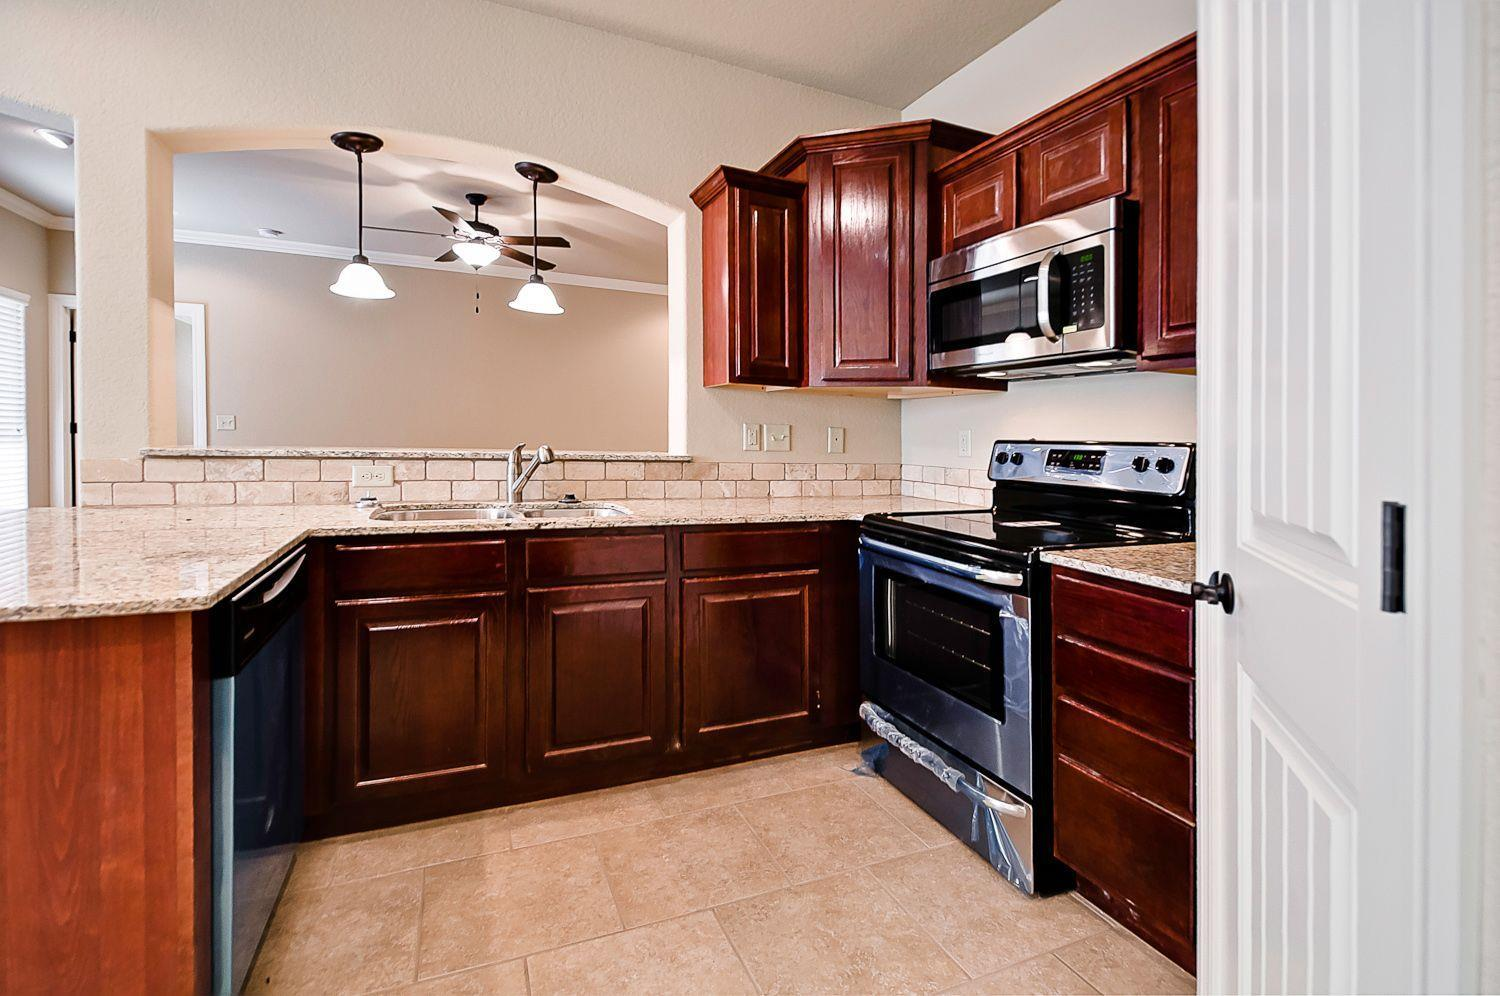 Kitchen featured in the Springs 1445 By Riverwood Homes - Arkansas in Fayetteville, AR